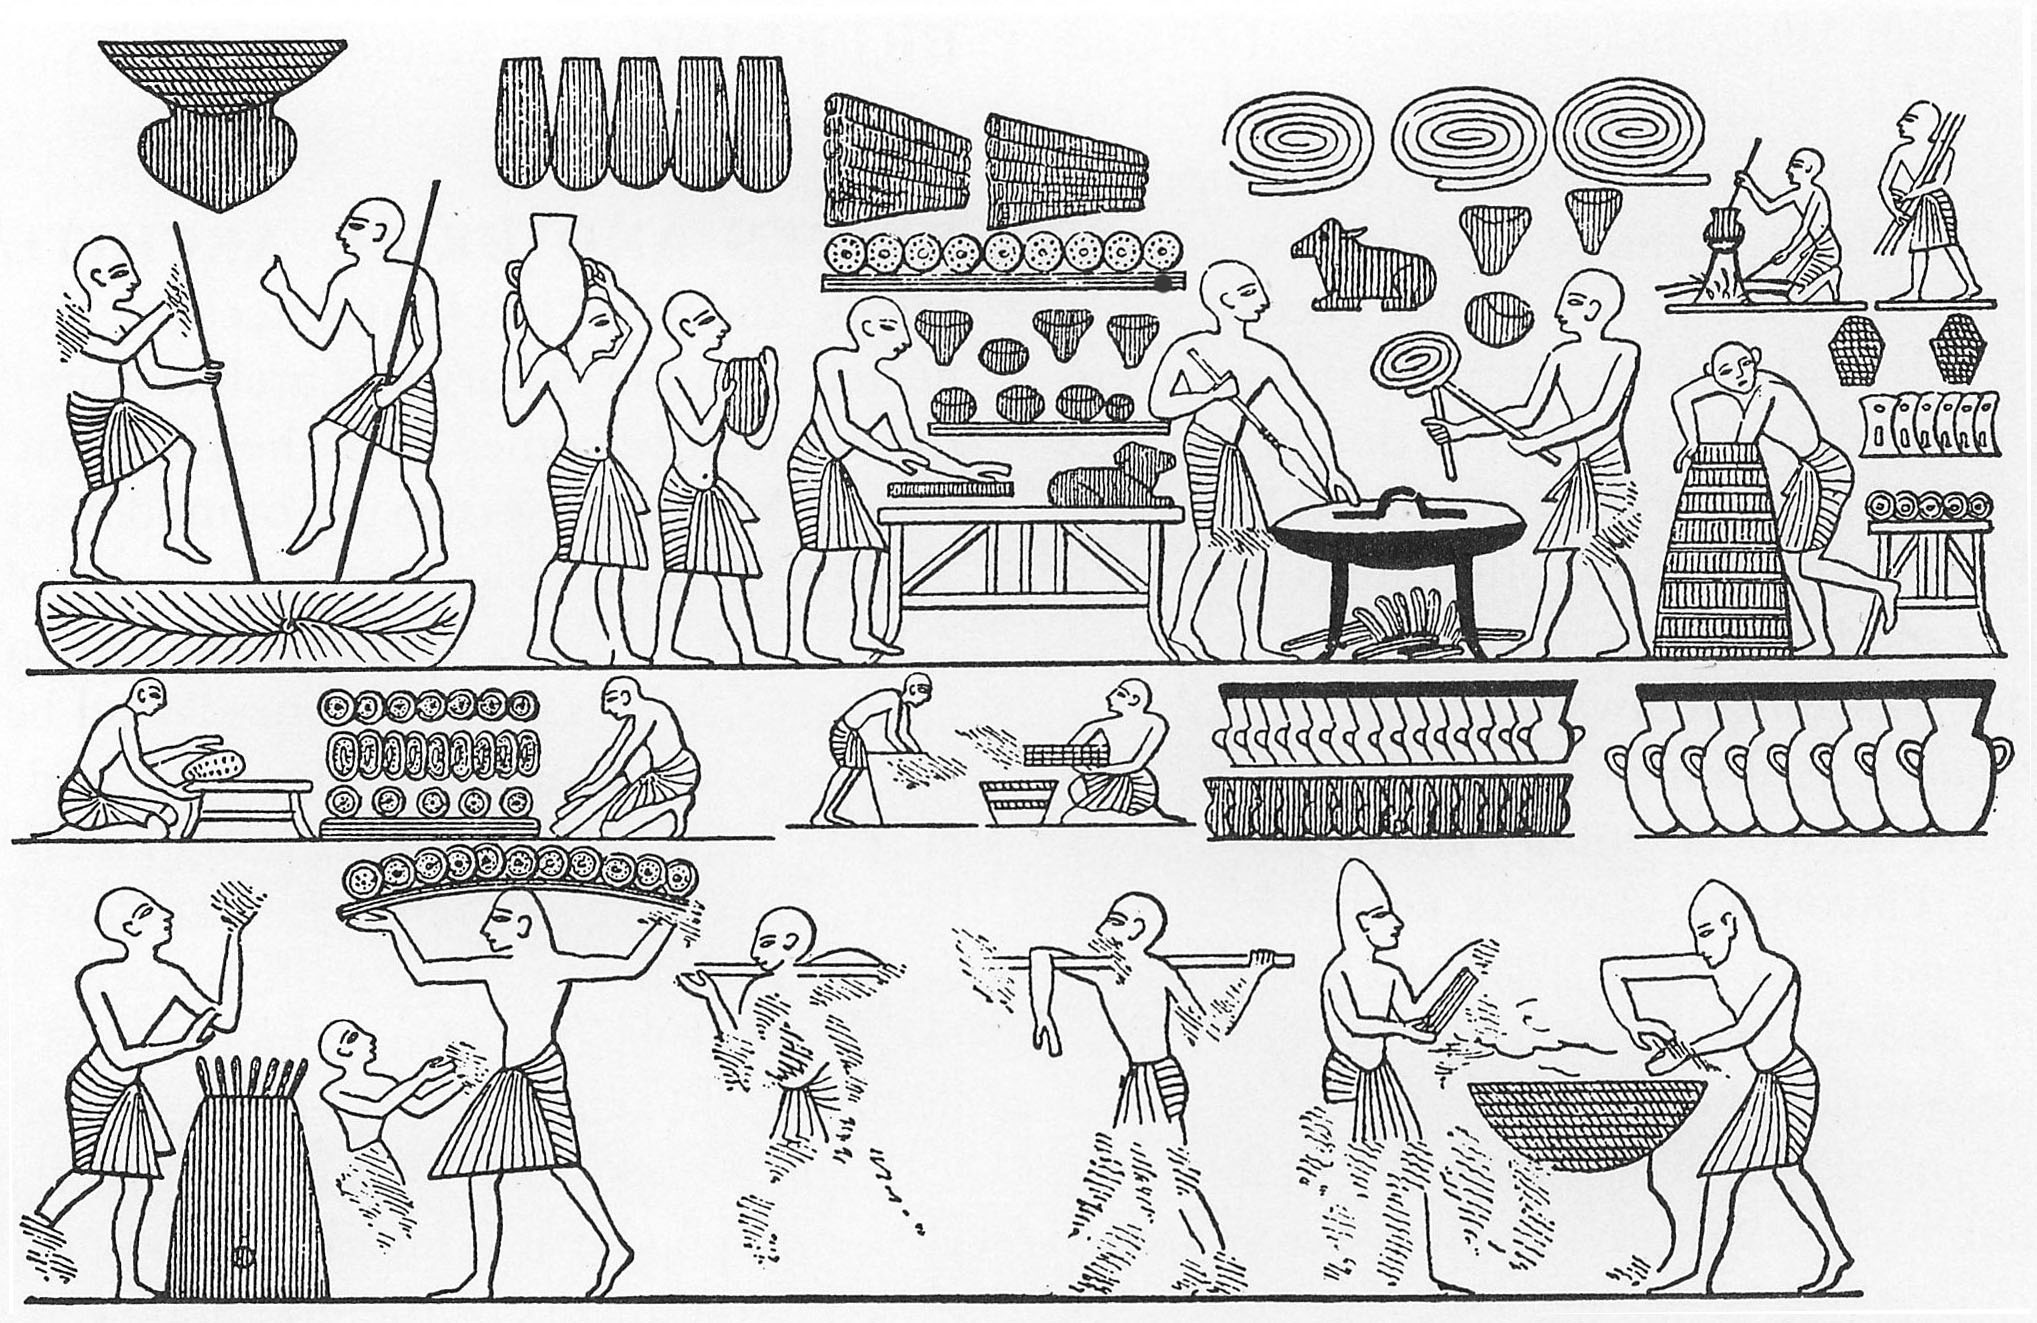 Baking Scene in tomb of Ramses III KV11, from Wilkinson, 1878, Vol 2, p. 34